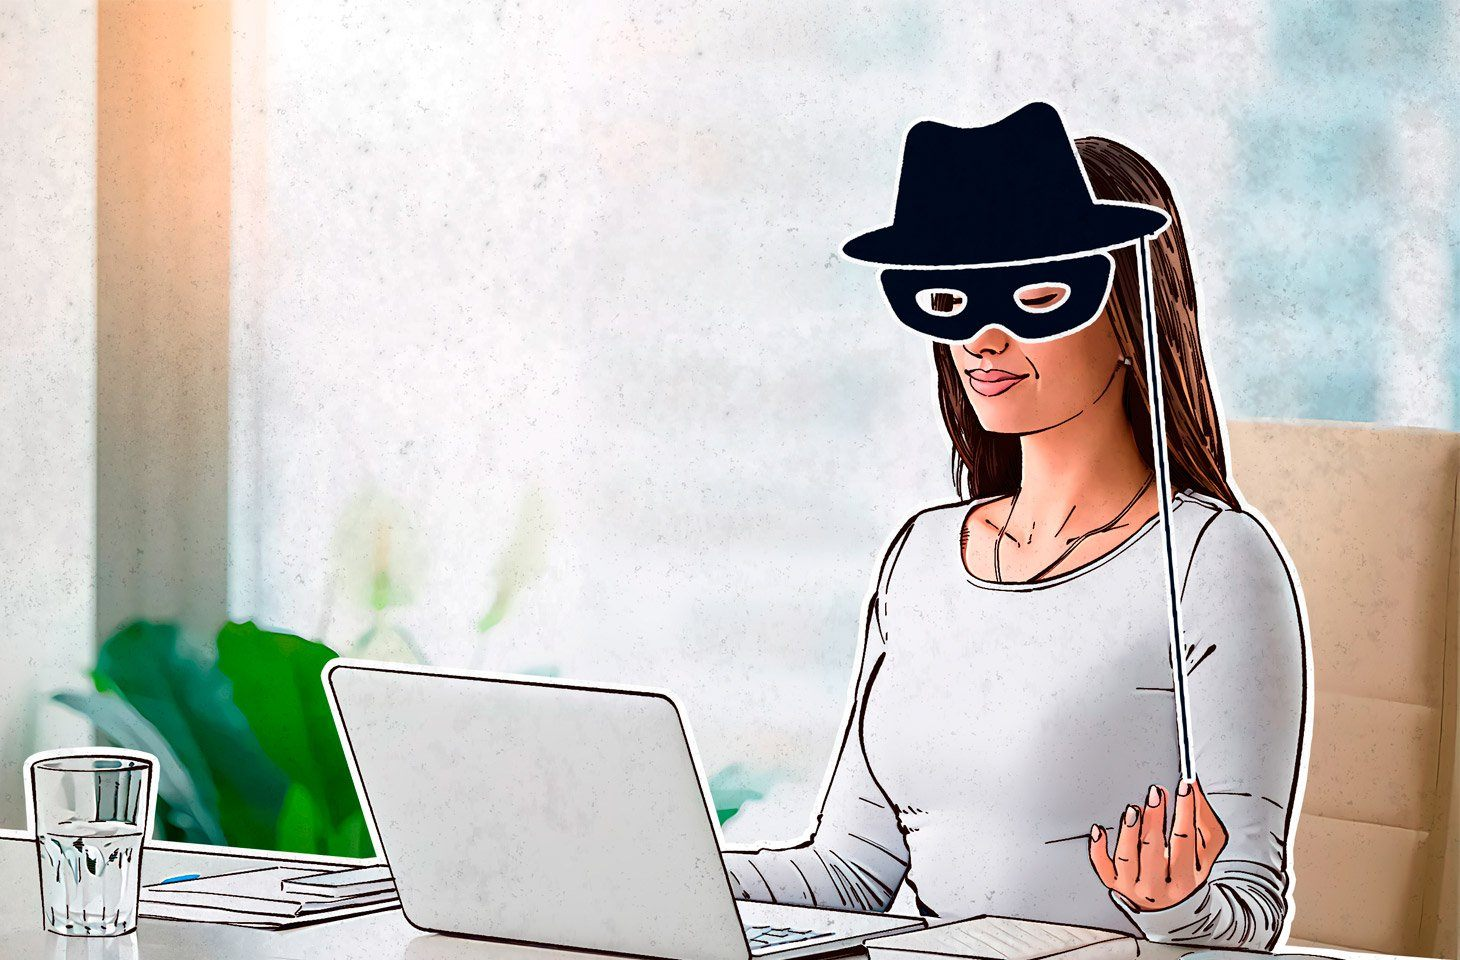 1493943086 kaspersky mode incognito questions reponses - Kaspersky: Mode Incognito Questions & Réponses